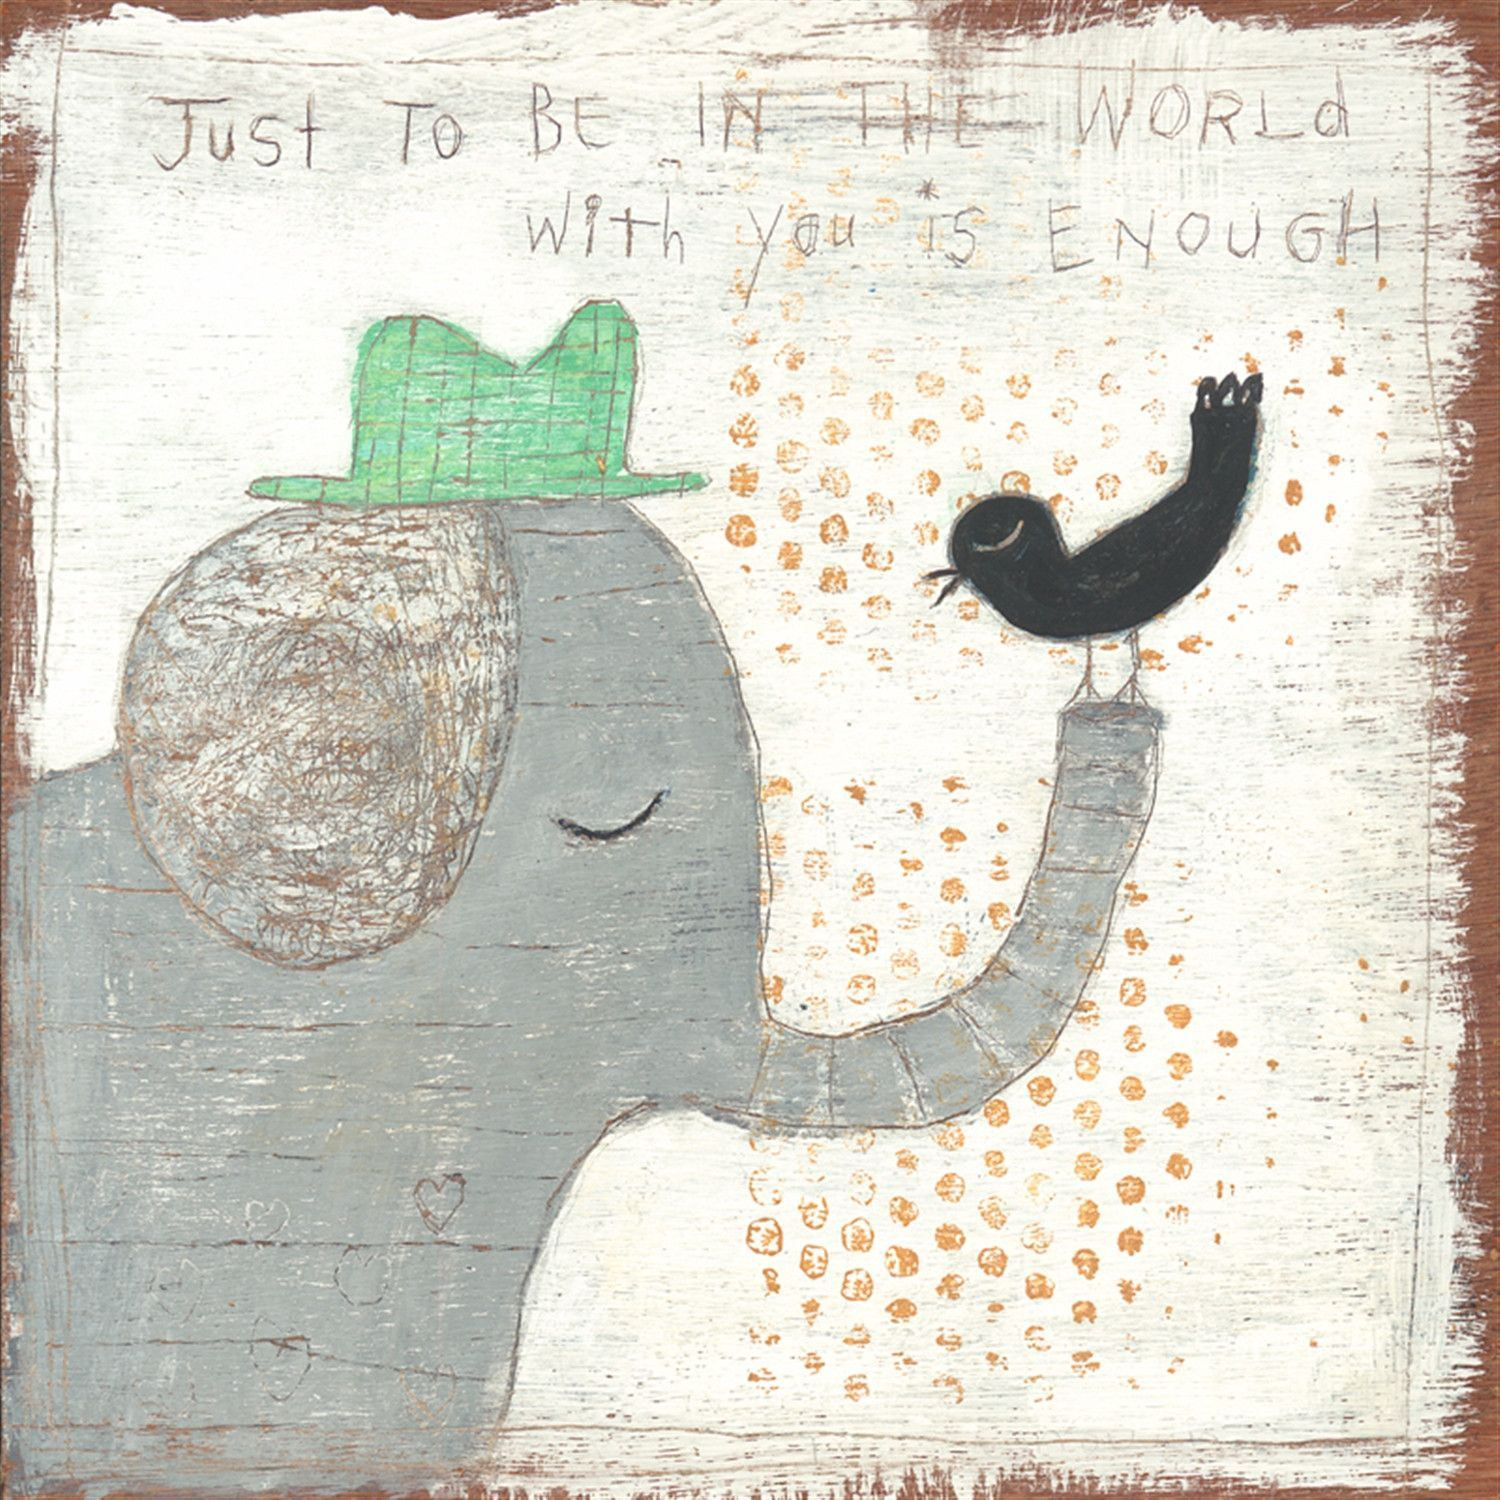 In The World With You Art Print Sugarboo Designs Art Elephant Art Art Prints